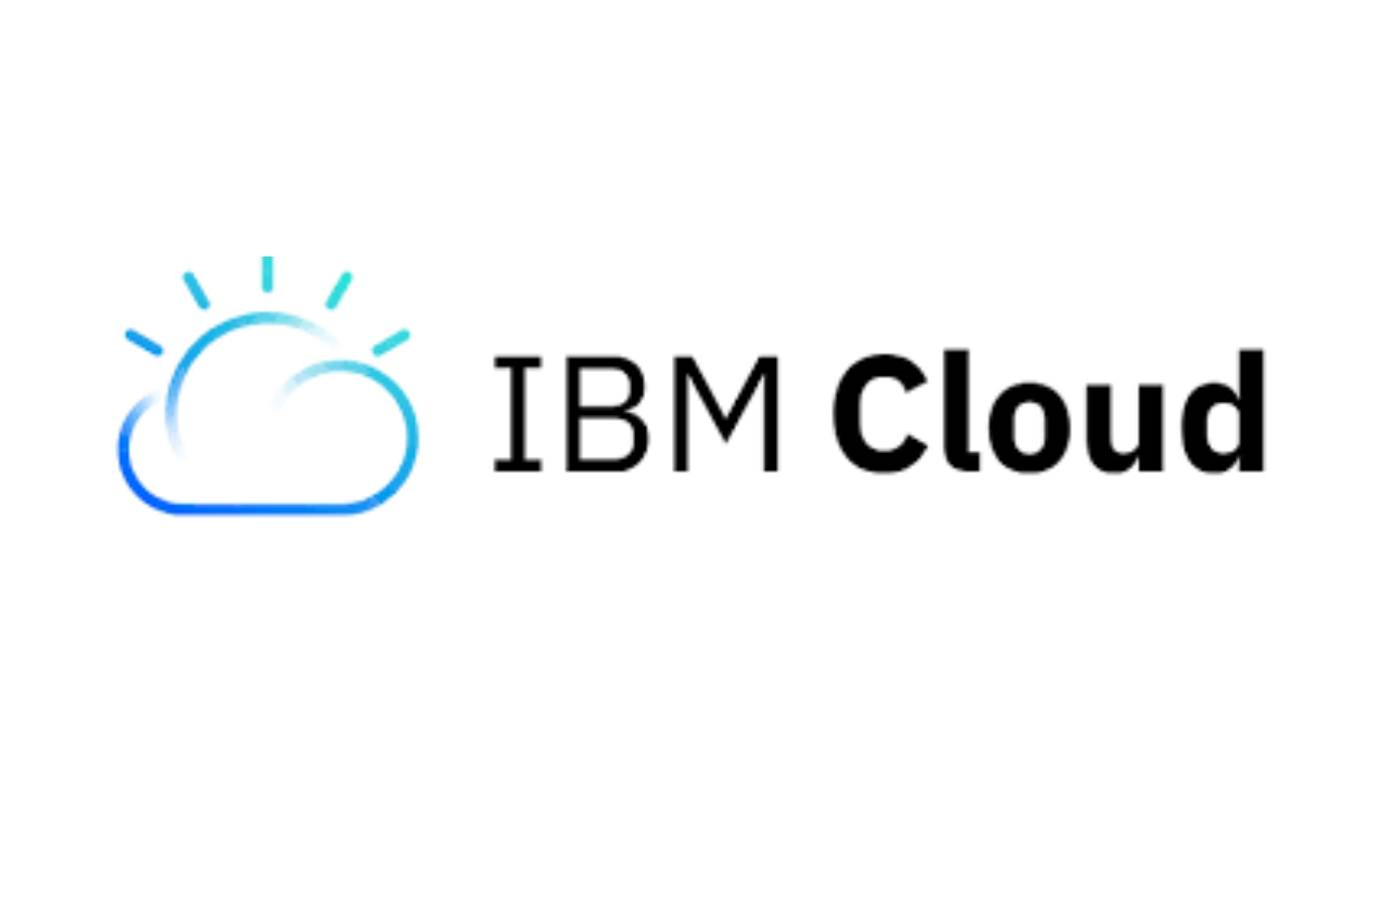 IBM buries its old clouds– they're all IBM Cloud now